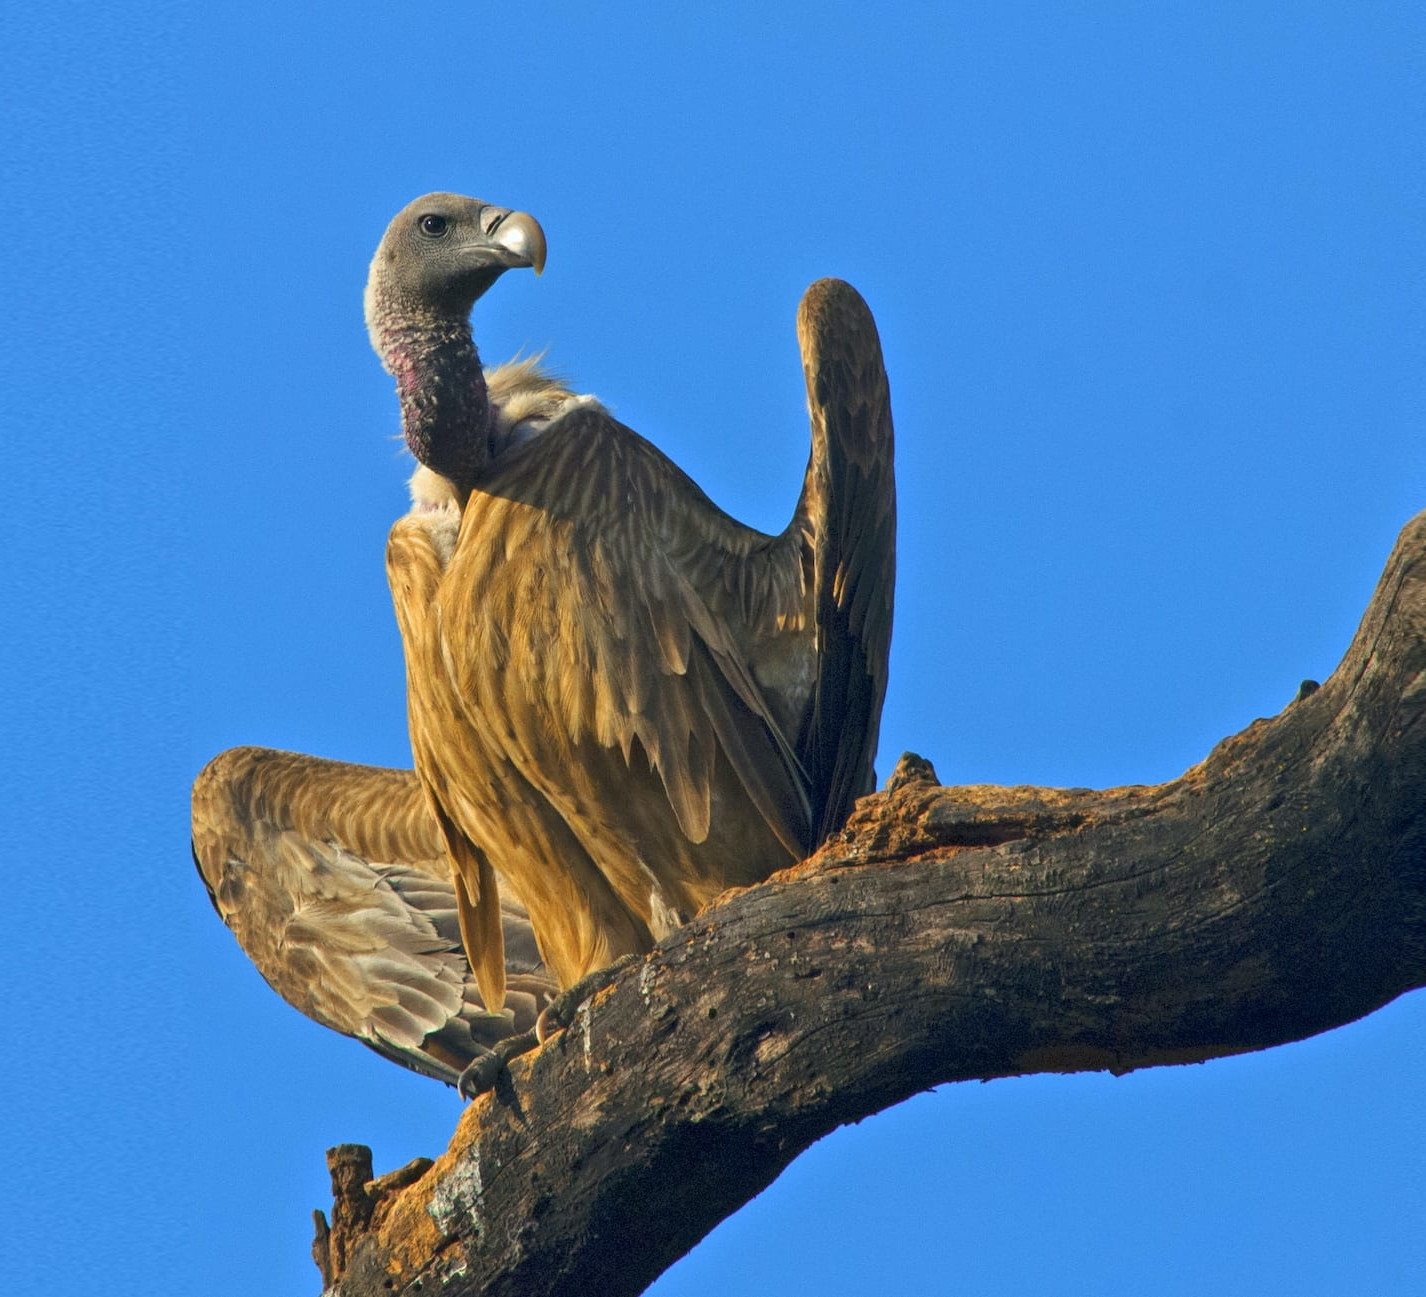 Dizzying Decline of the Indian Vulture